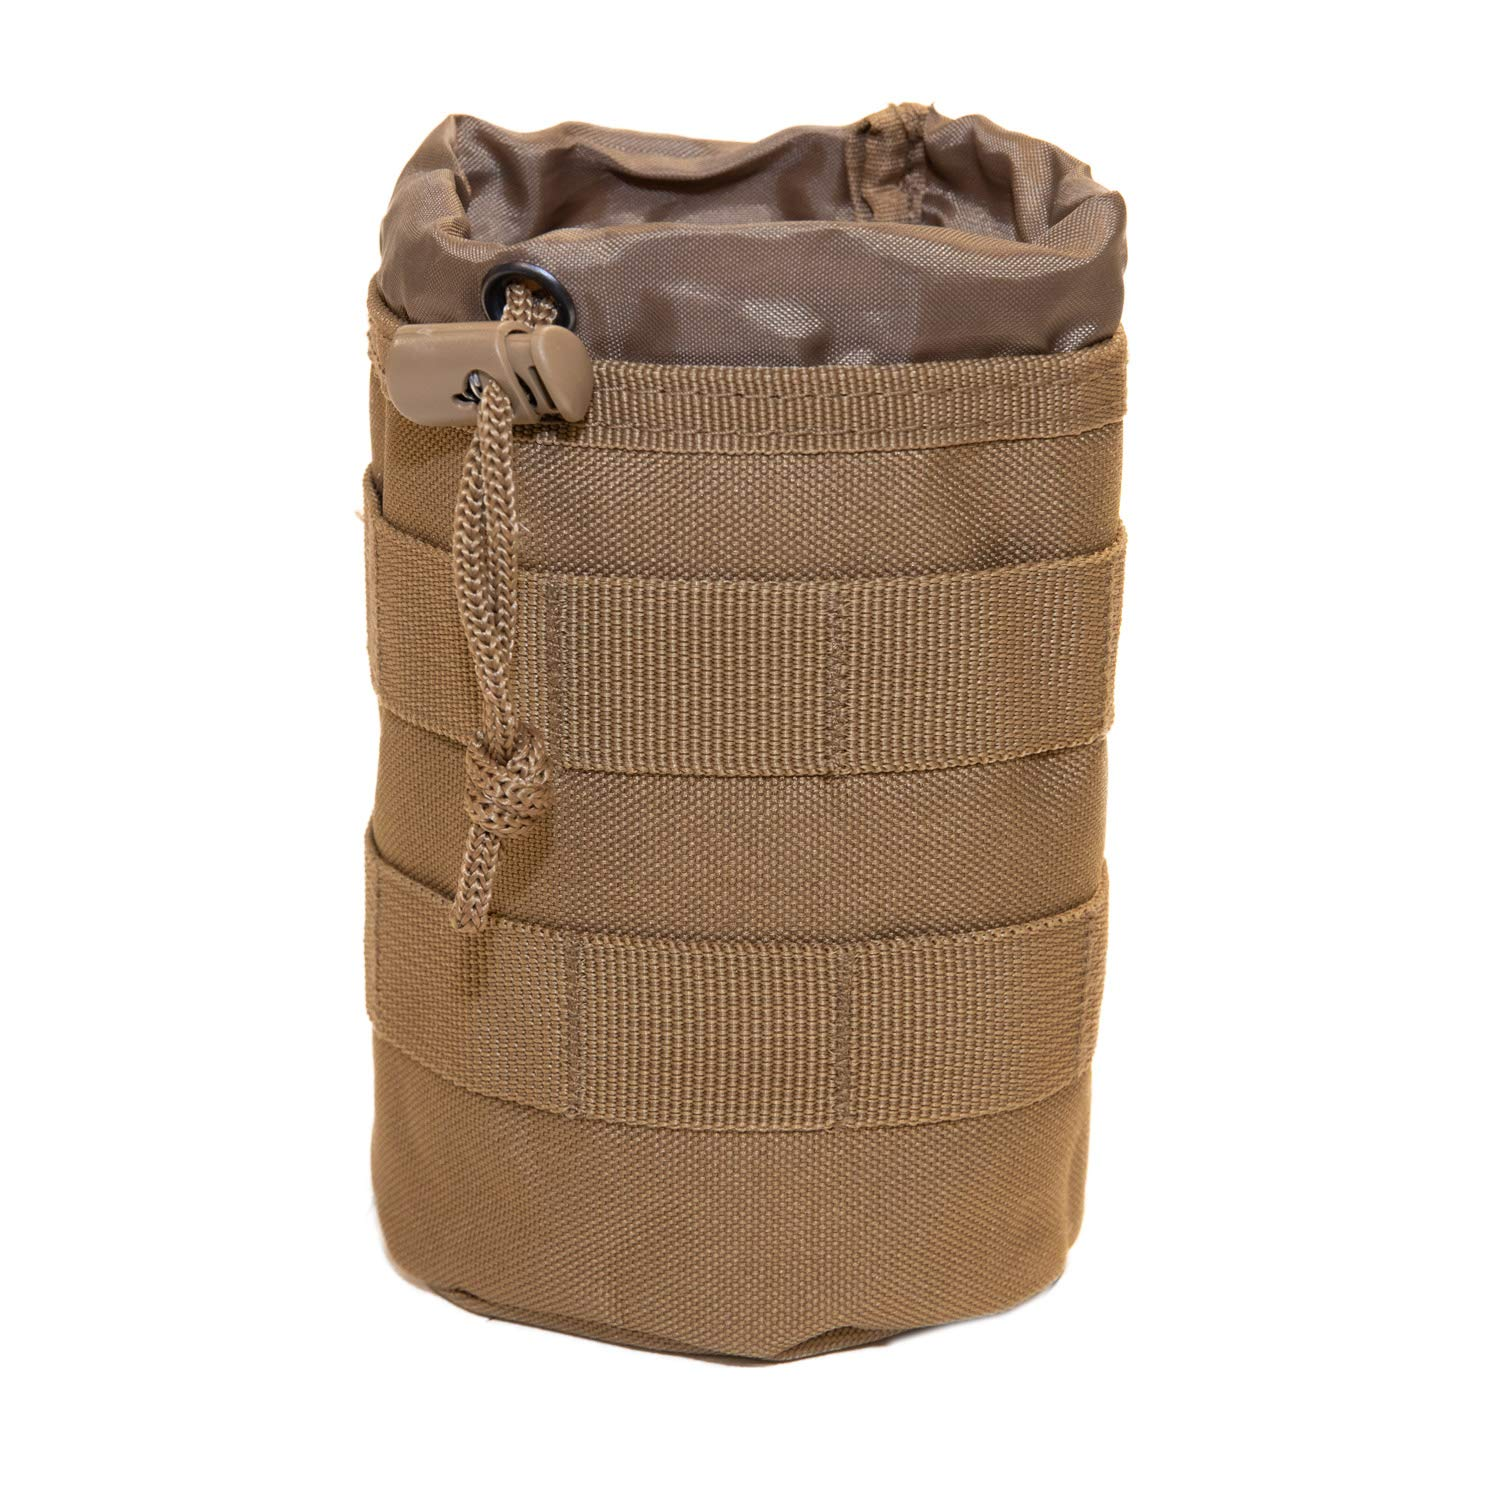 d1d3a8bba9f Amazon.com   Tactical Baby Gear Bottle Pouch 2.0 Thermal Insulated MOLLE  Drawstring Open Top (Coyote Brown)   Baby